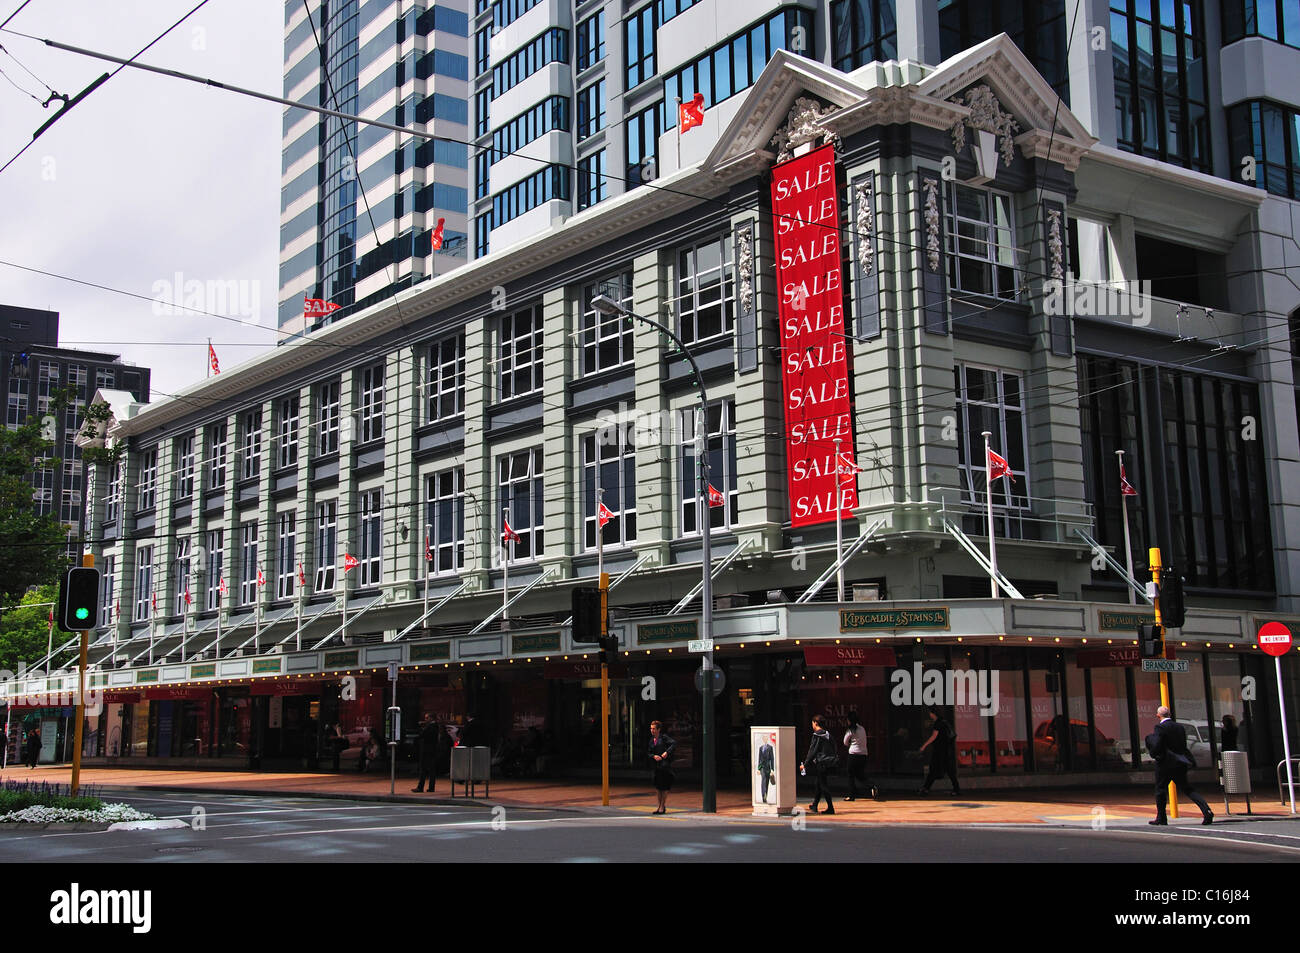 Kirkcaldie & Stains Ltd Department Store, Lambton Quay, Wellington, Wellington Region, North Island, New Zealand - Stock Image